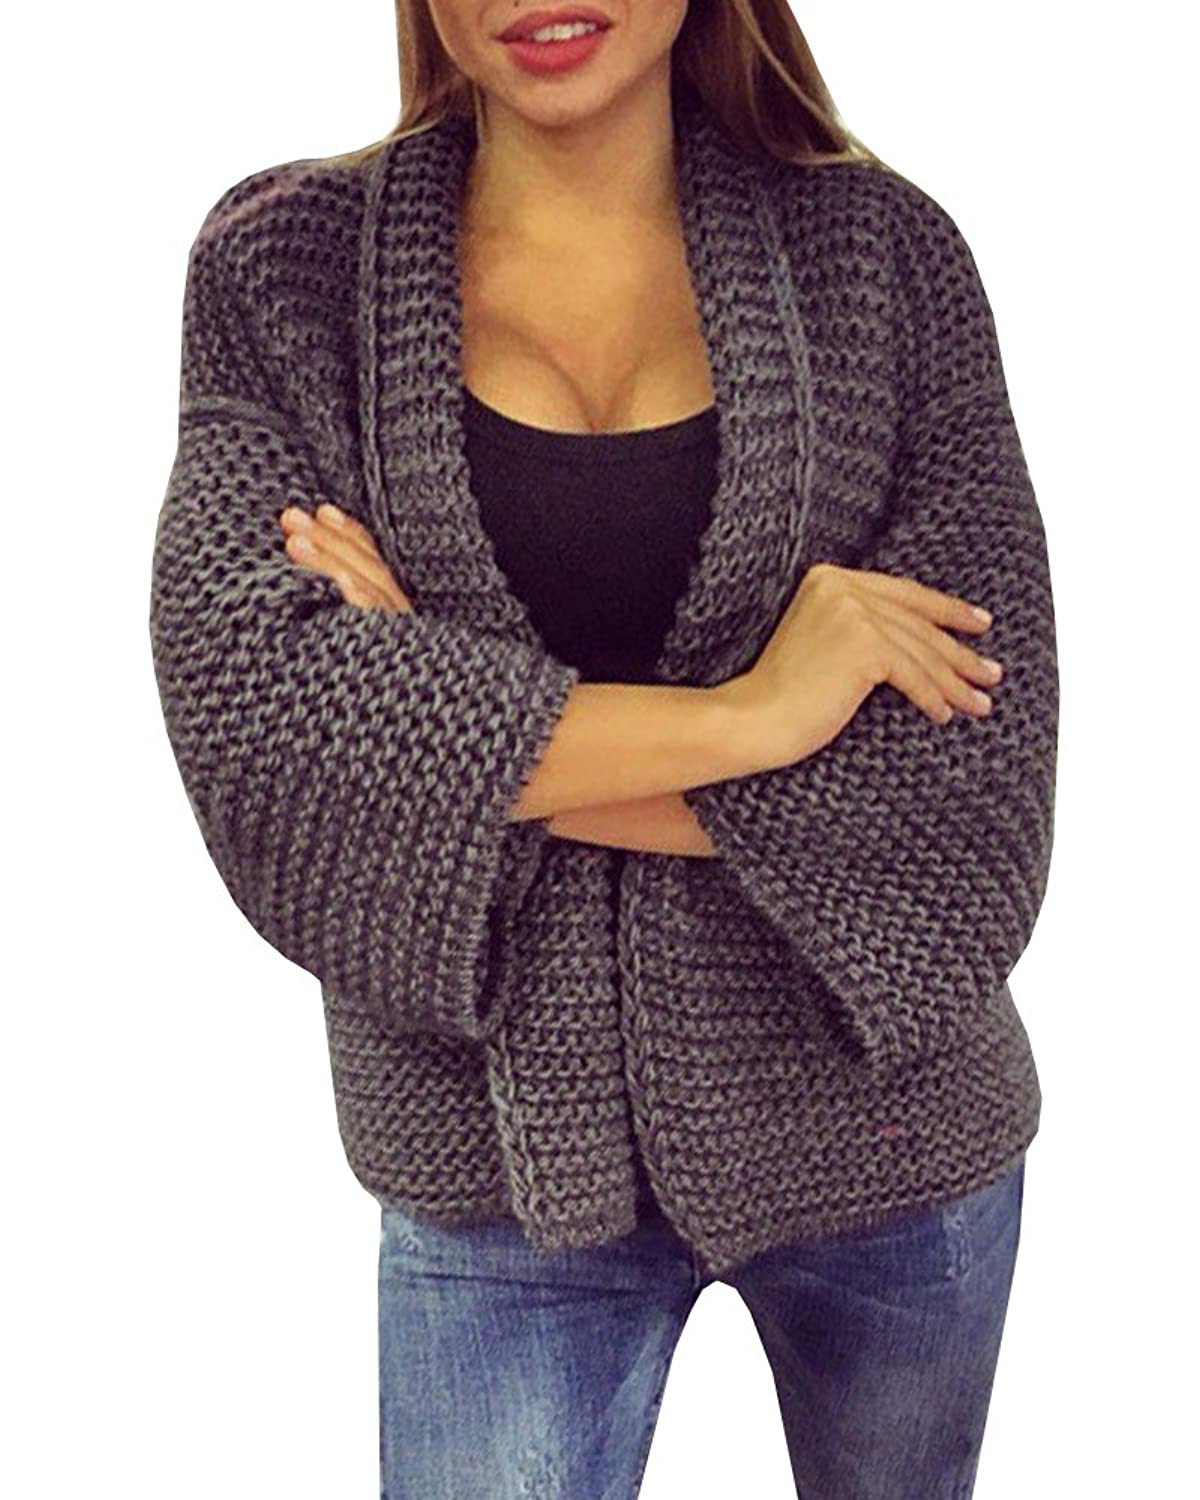 Women's Top Long Sleeves Baggy Cable Chunky Knitted Cardigan ...